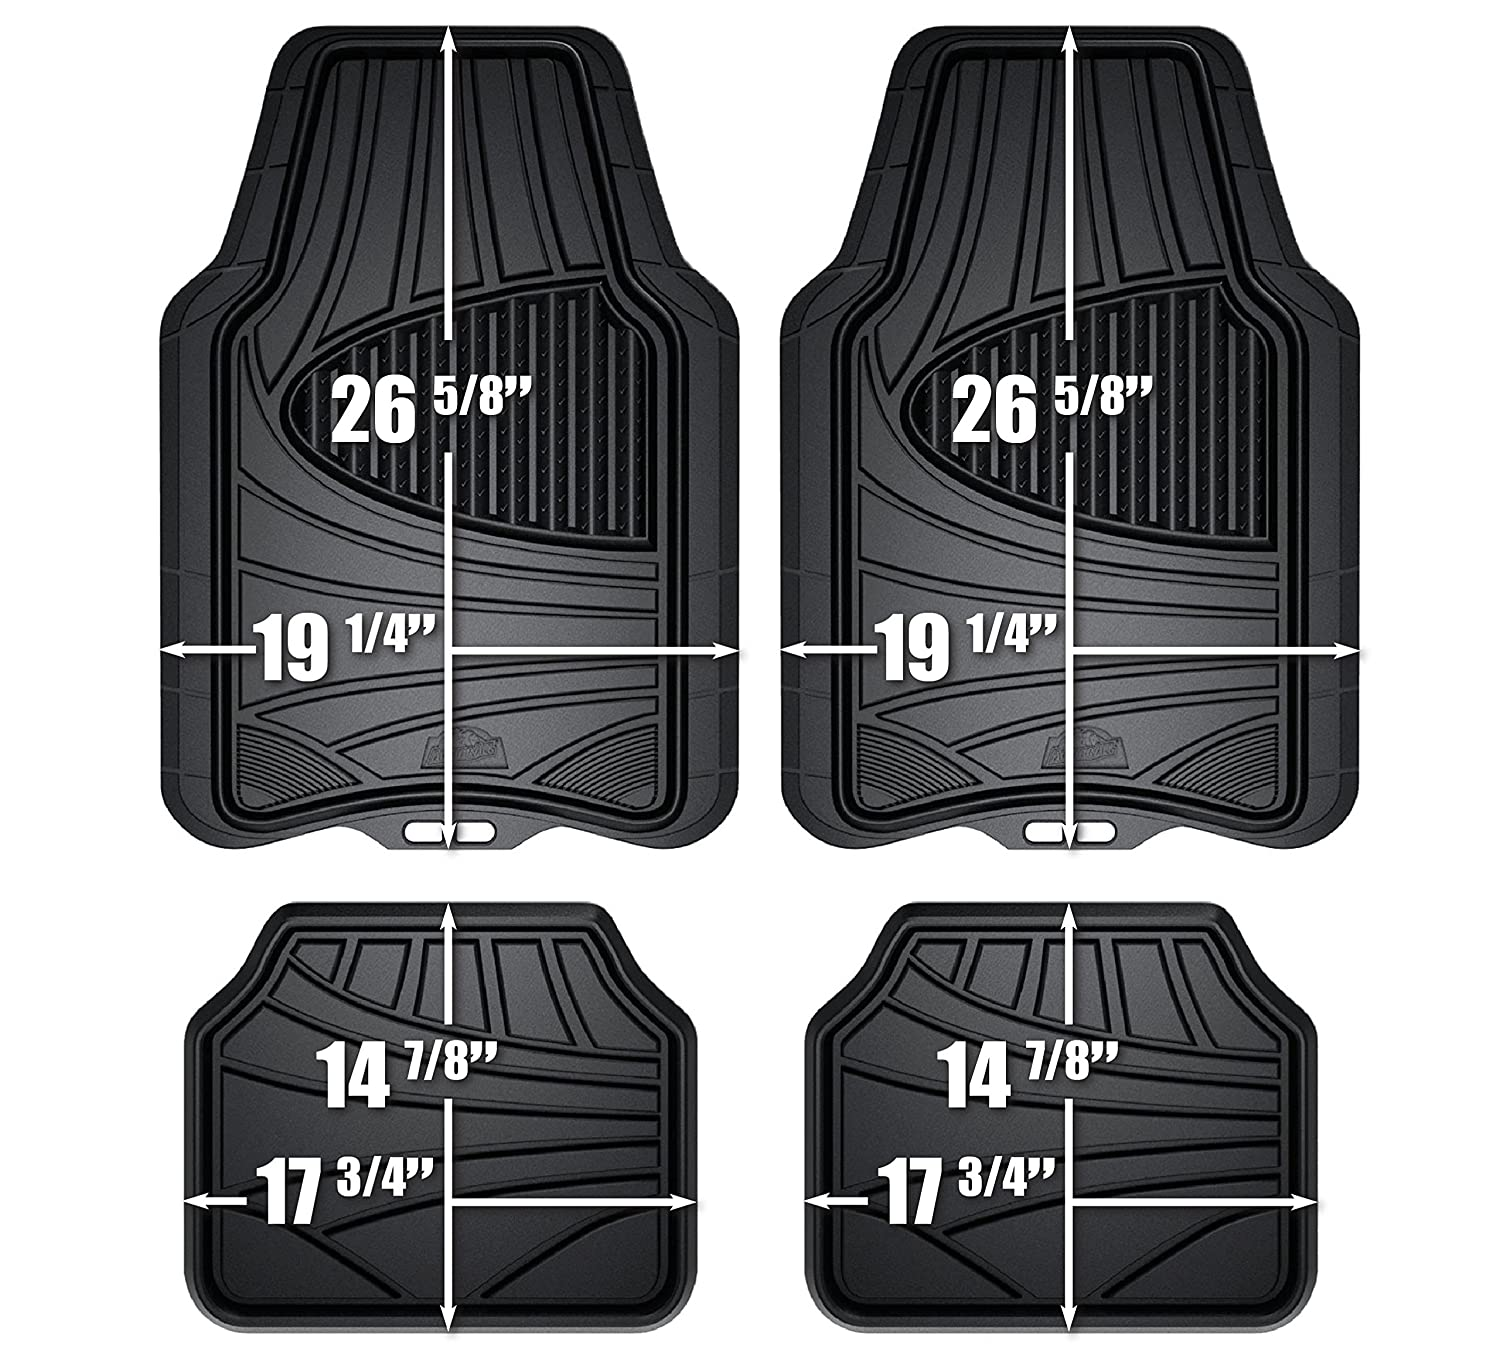 Rubber floor mats toyota rav4 - Most Wished For